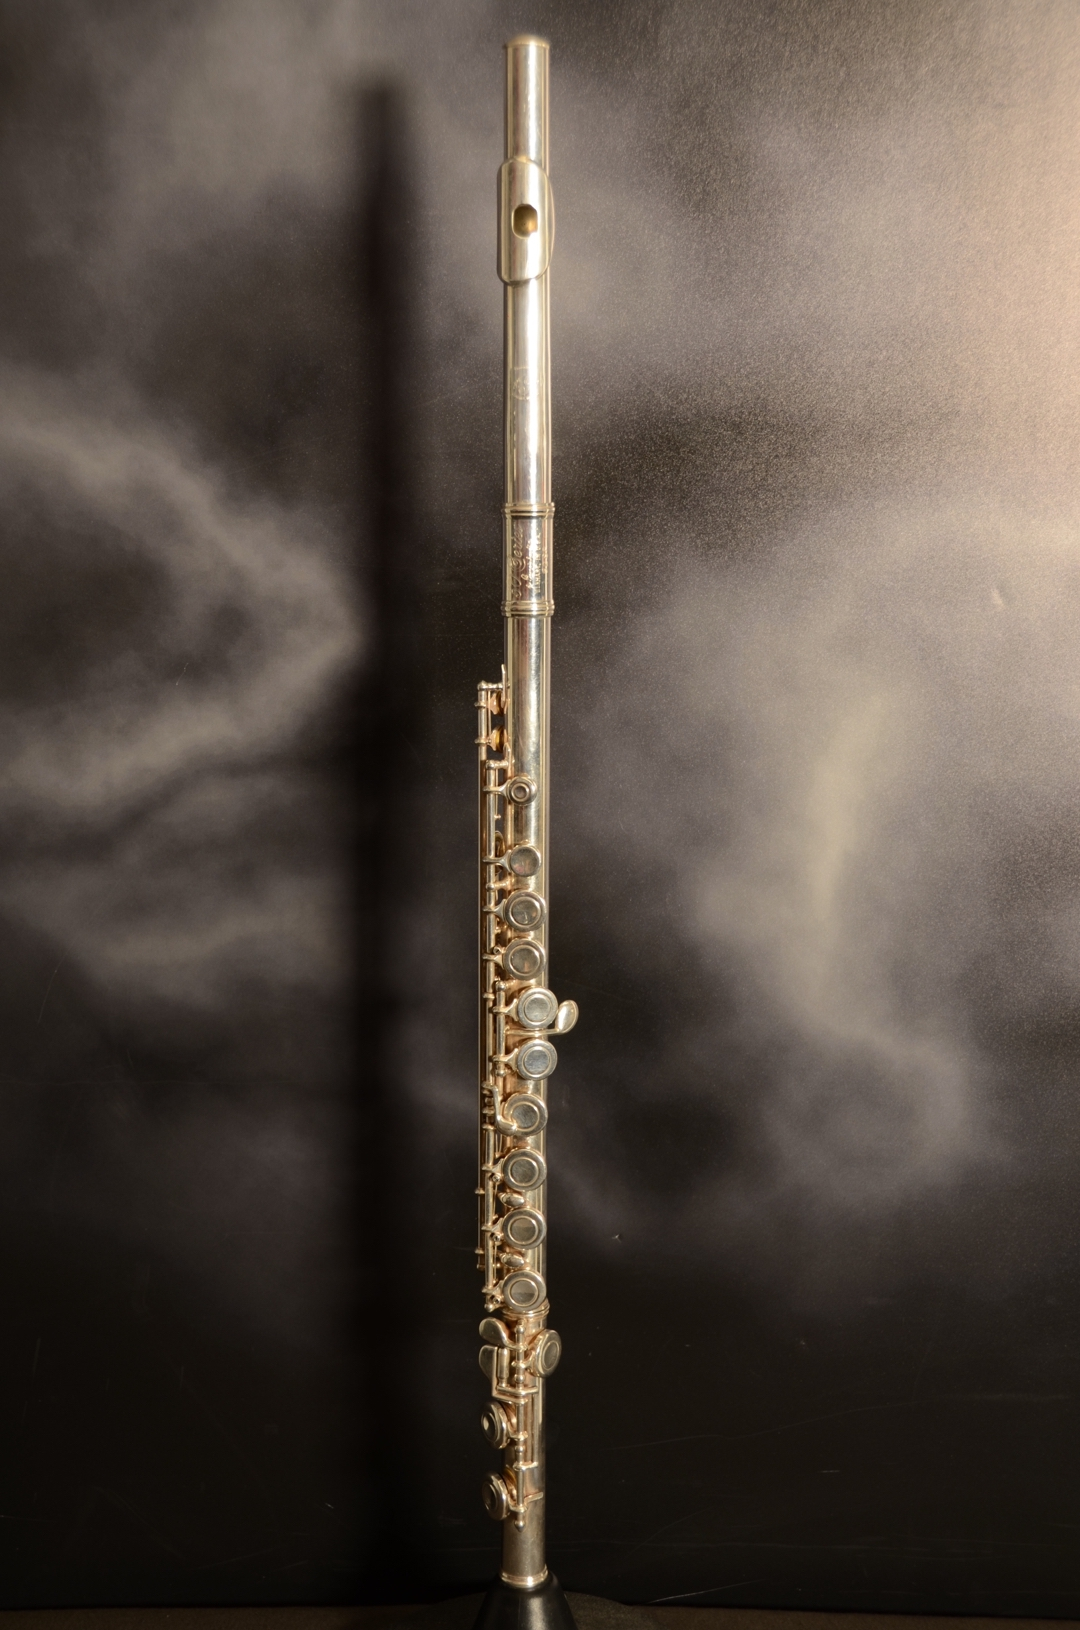 Gemeinhardt - 52SP Flute With Original Hardshell Case